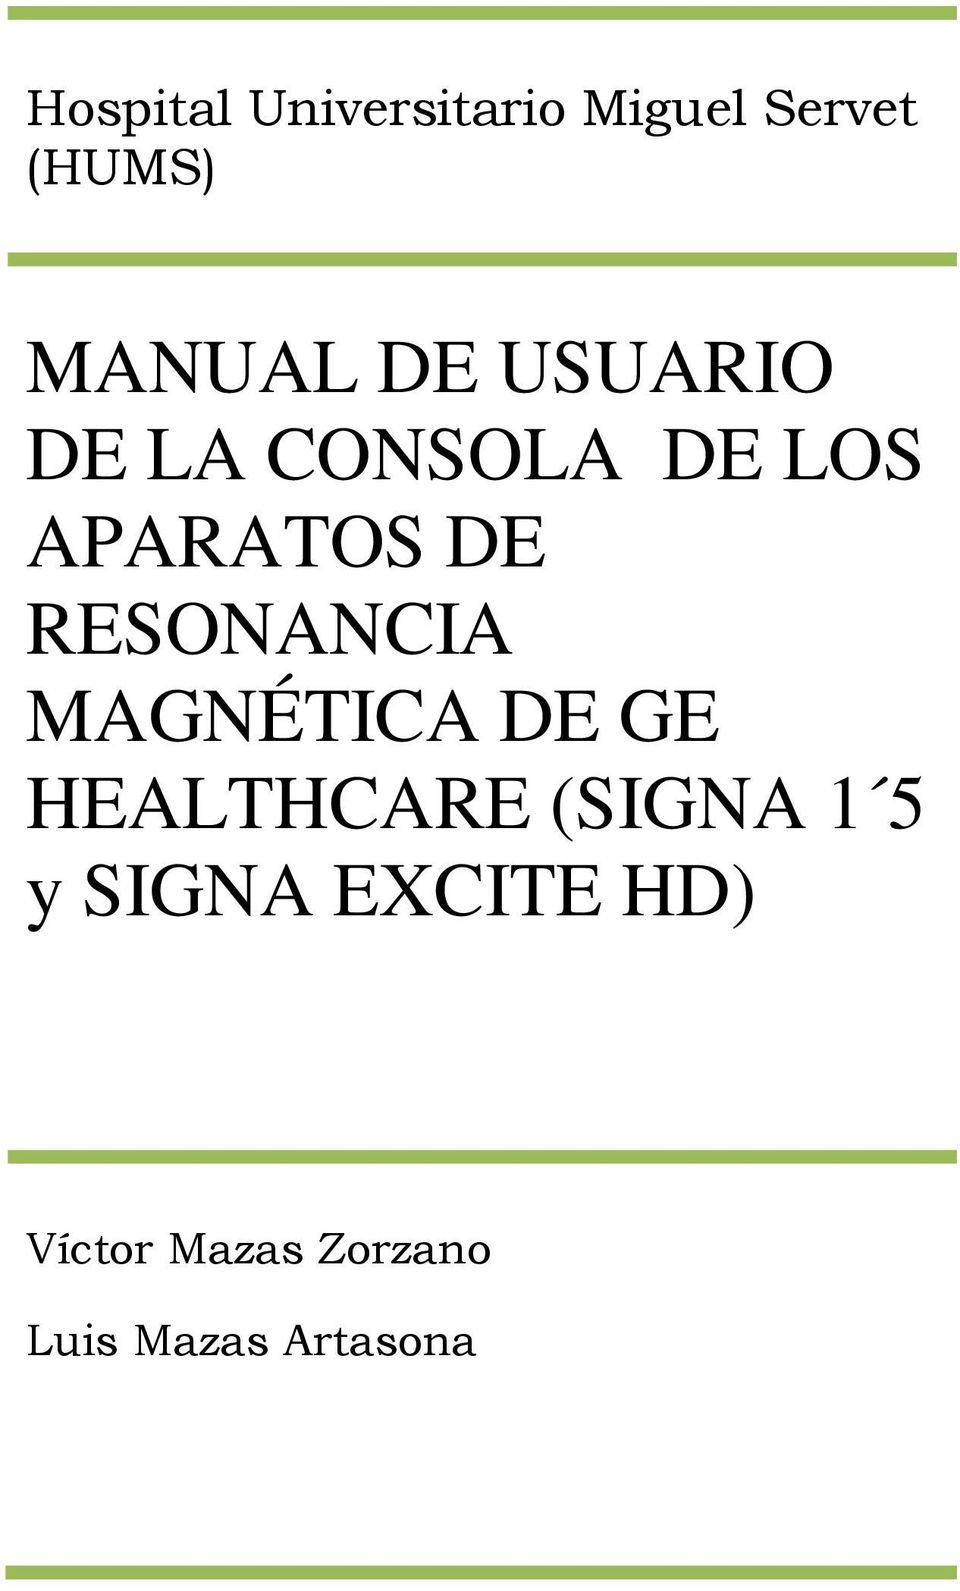 RESONANCIA MAGNÉTICA DE GE HEALTHCARE (SIGNA 1 5 y